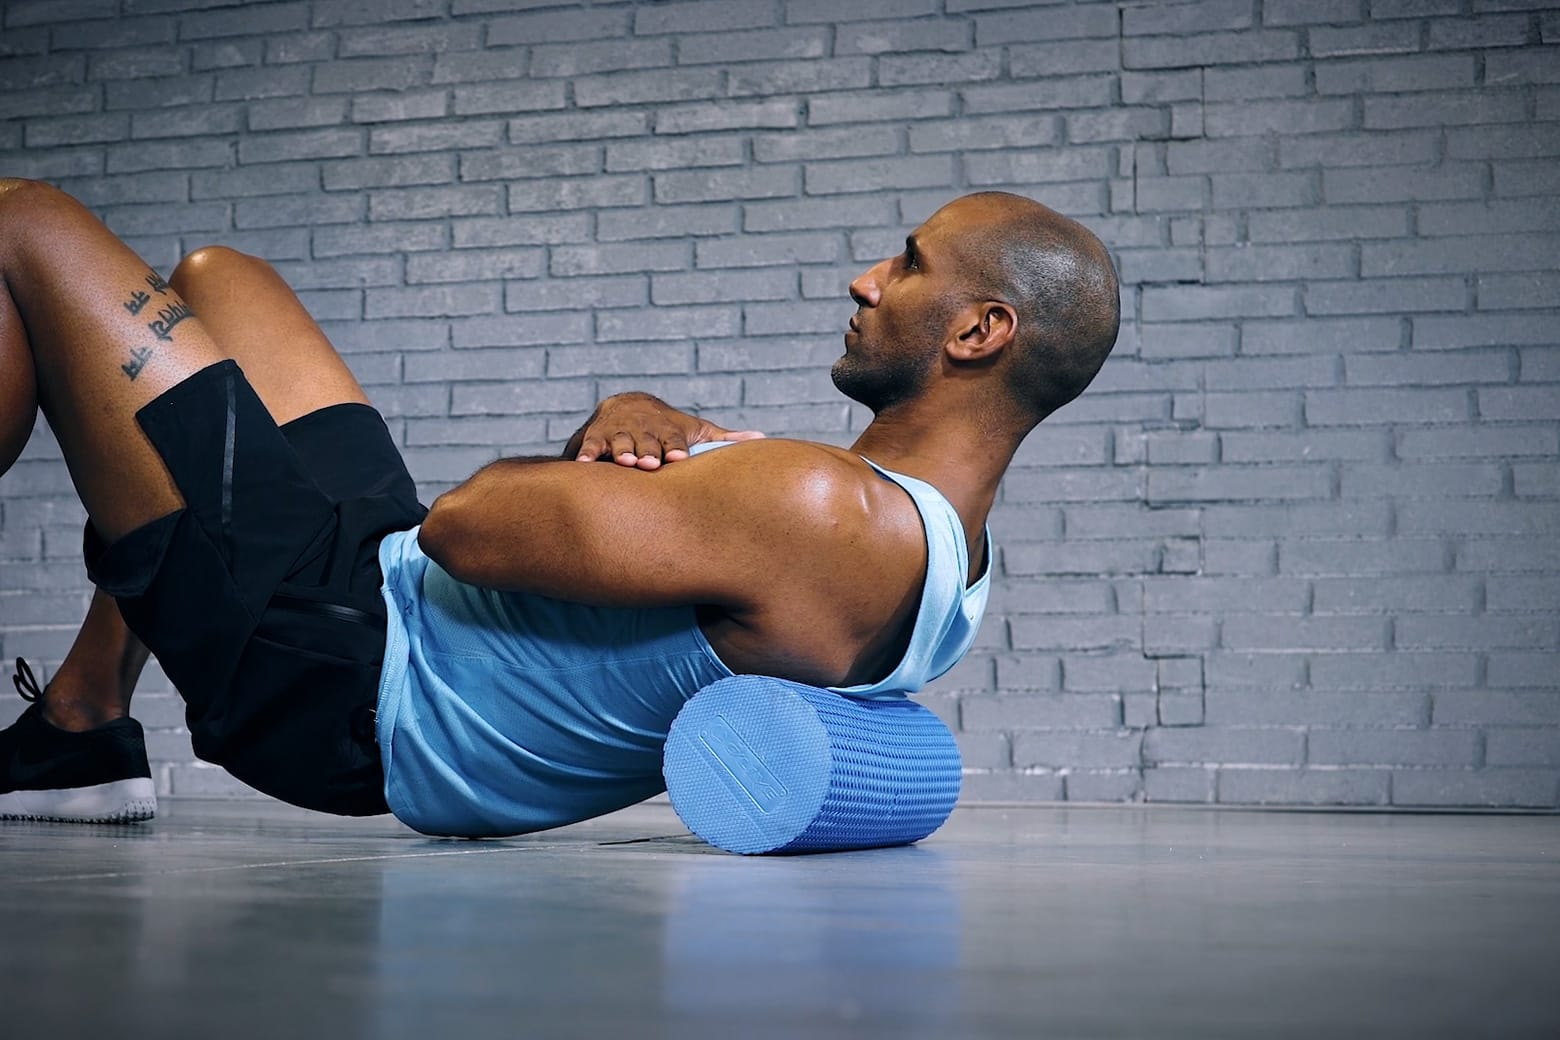 Tutorial: Foam Roll For The Upper Back / Faszienrolle für den Oberen Rücken